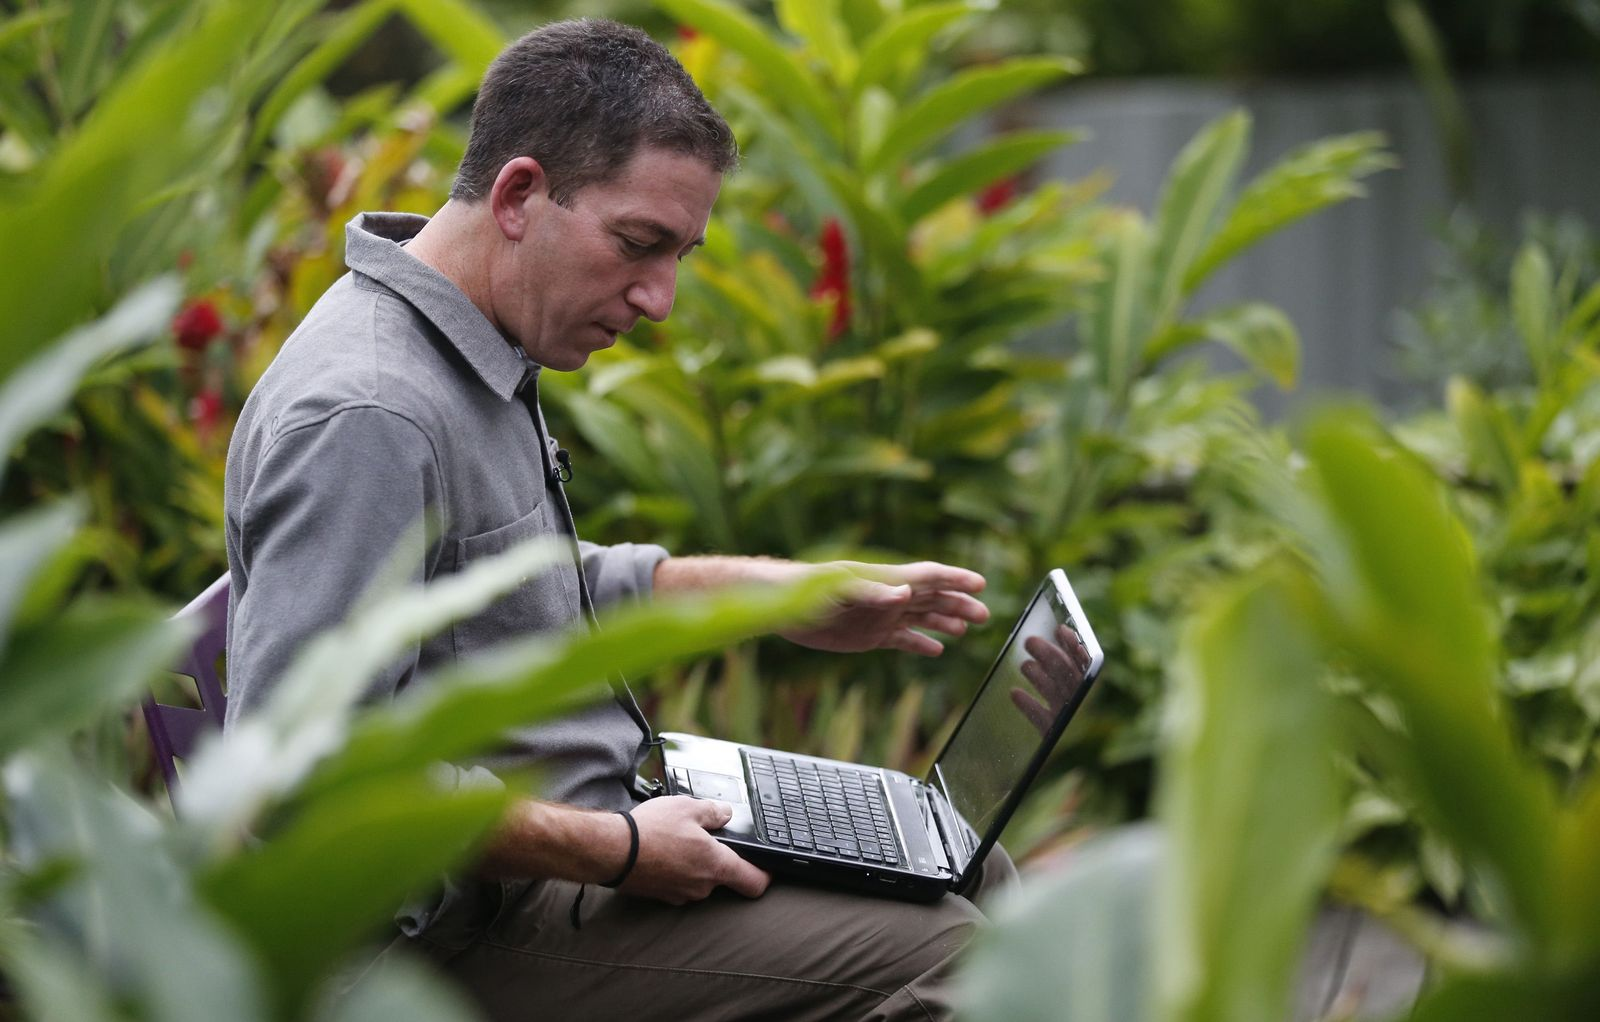 Glenn Greenwald, the blogger and journalist who broke the U.S. NSA surveillance scandal, uses his laptop before an exclusive interview with Reuters in Rio de Janeiro